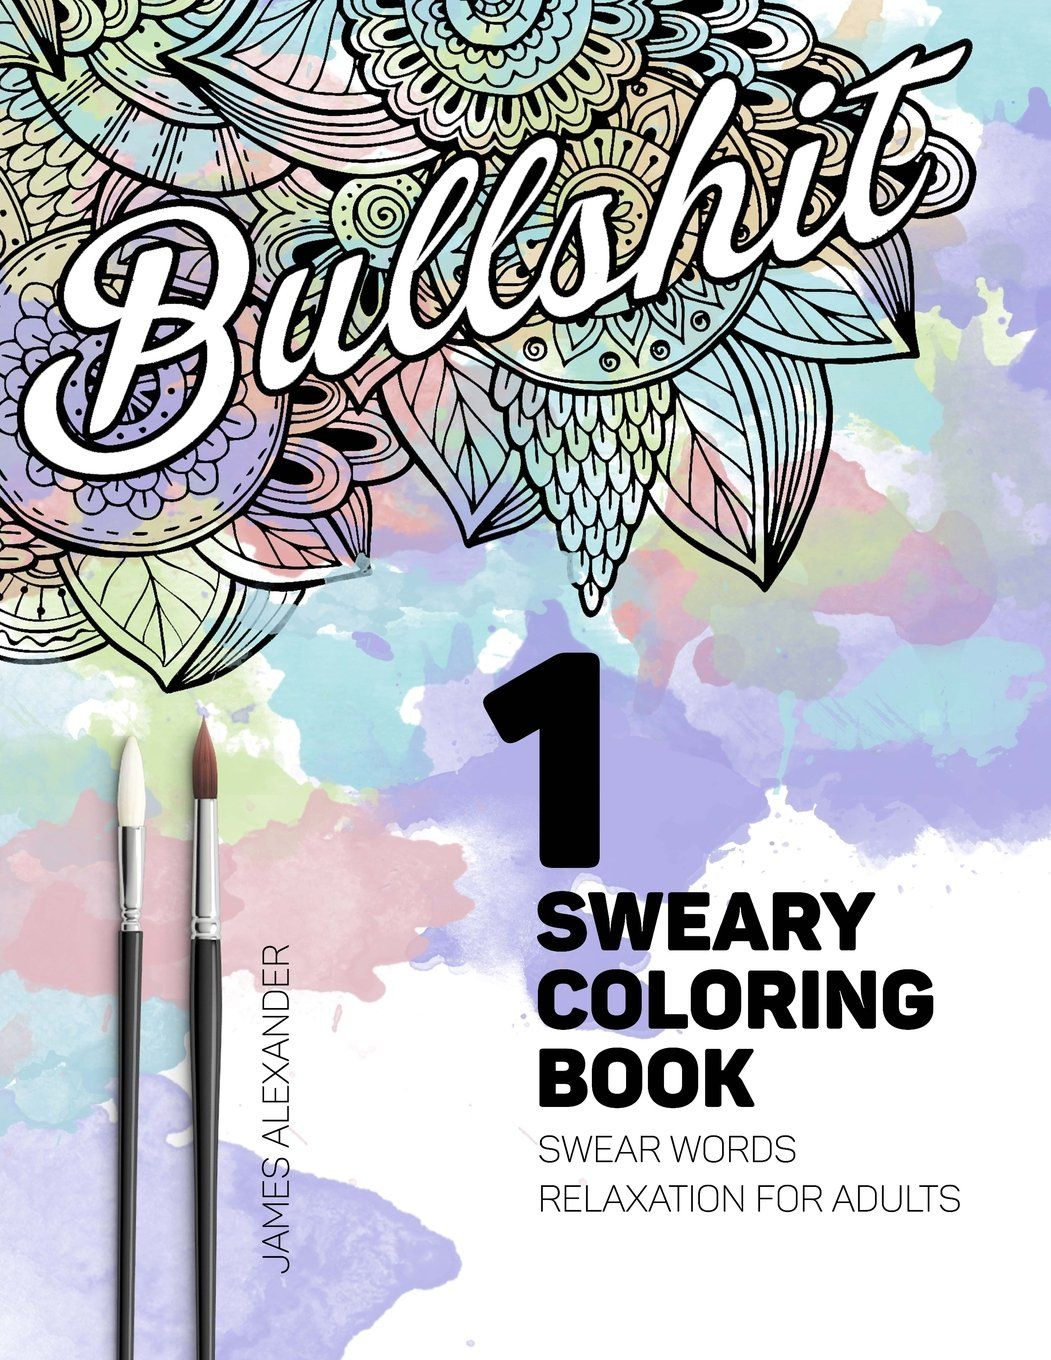 Swear word coloring book volume 1 - Sweary Coloring Book Swear Words Relaxation For Adults With Mandalas Paisley Designs Swear Word Adult Coloring Book Volume